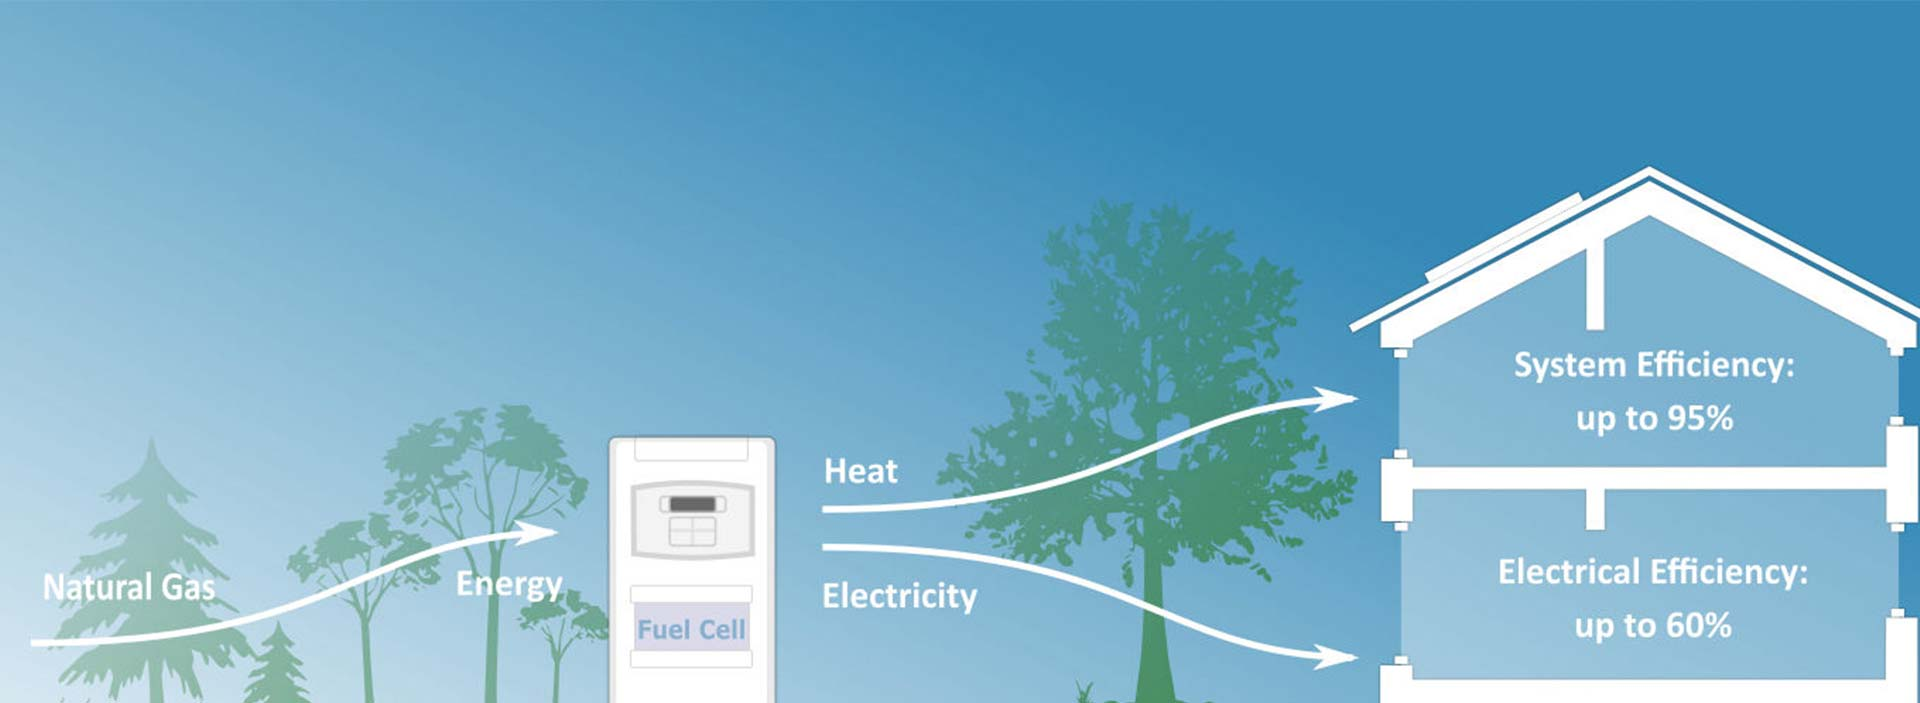 diagram of energy usage